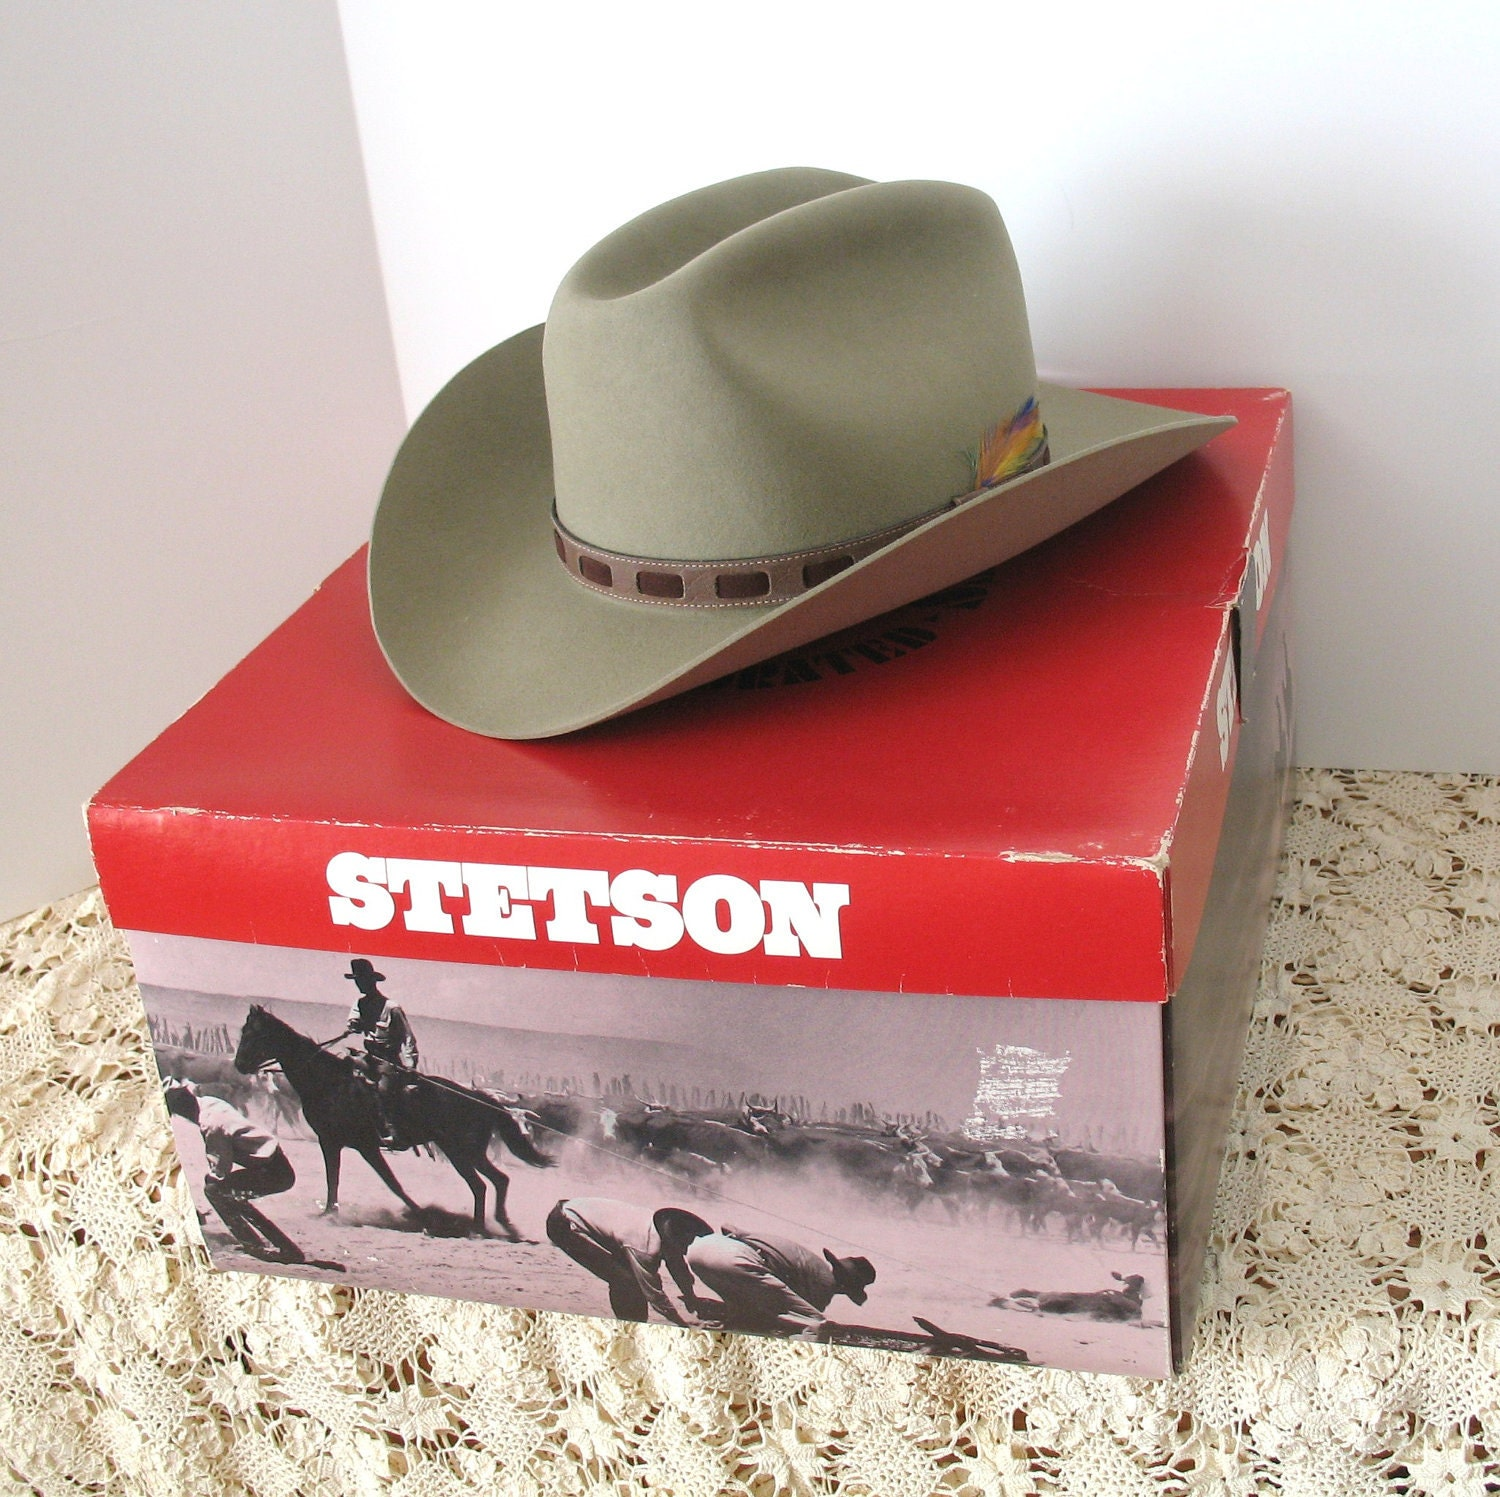 dating stetson hat boxes Buy stetson men's 6x open road fur felt cowboy hat - sfoprd-052661 silver belly: shop top fashion brands cowboy hats at amazoncom ✓ free delivery and returns possible on eligible but, be forewarned, they're not gonna ship it to you in the wonderful stetson box that you're used to having your hat come in.